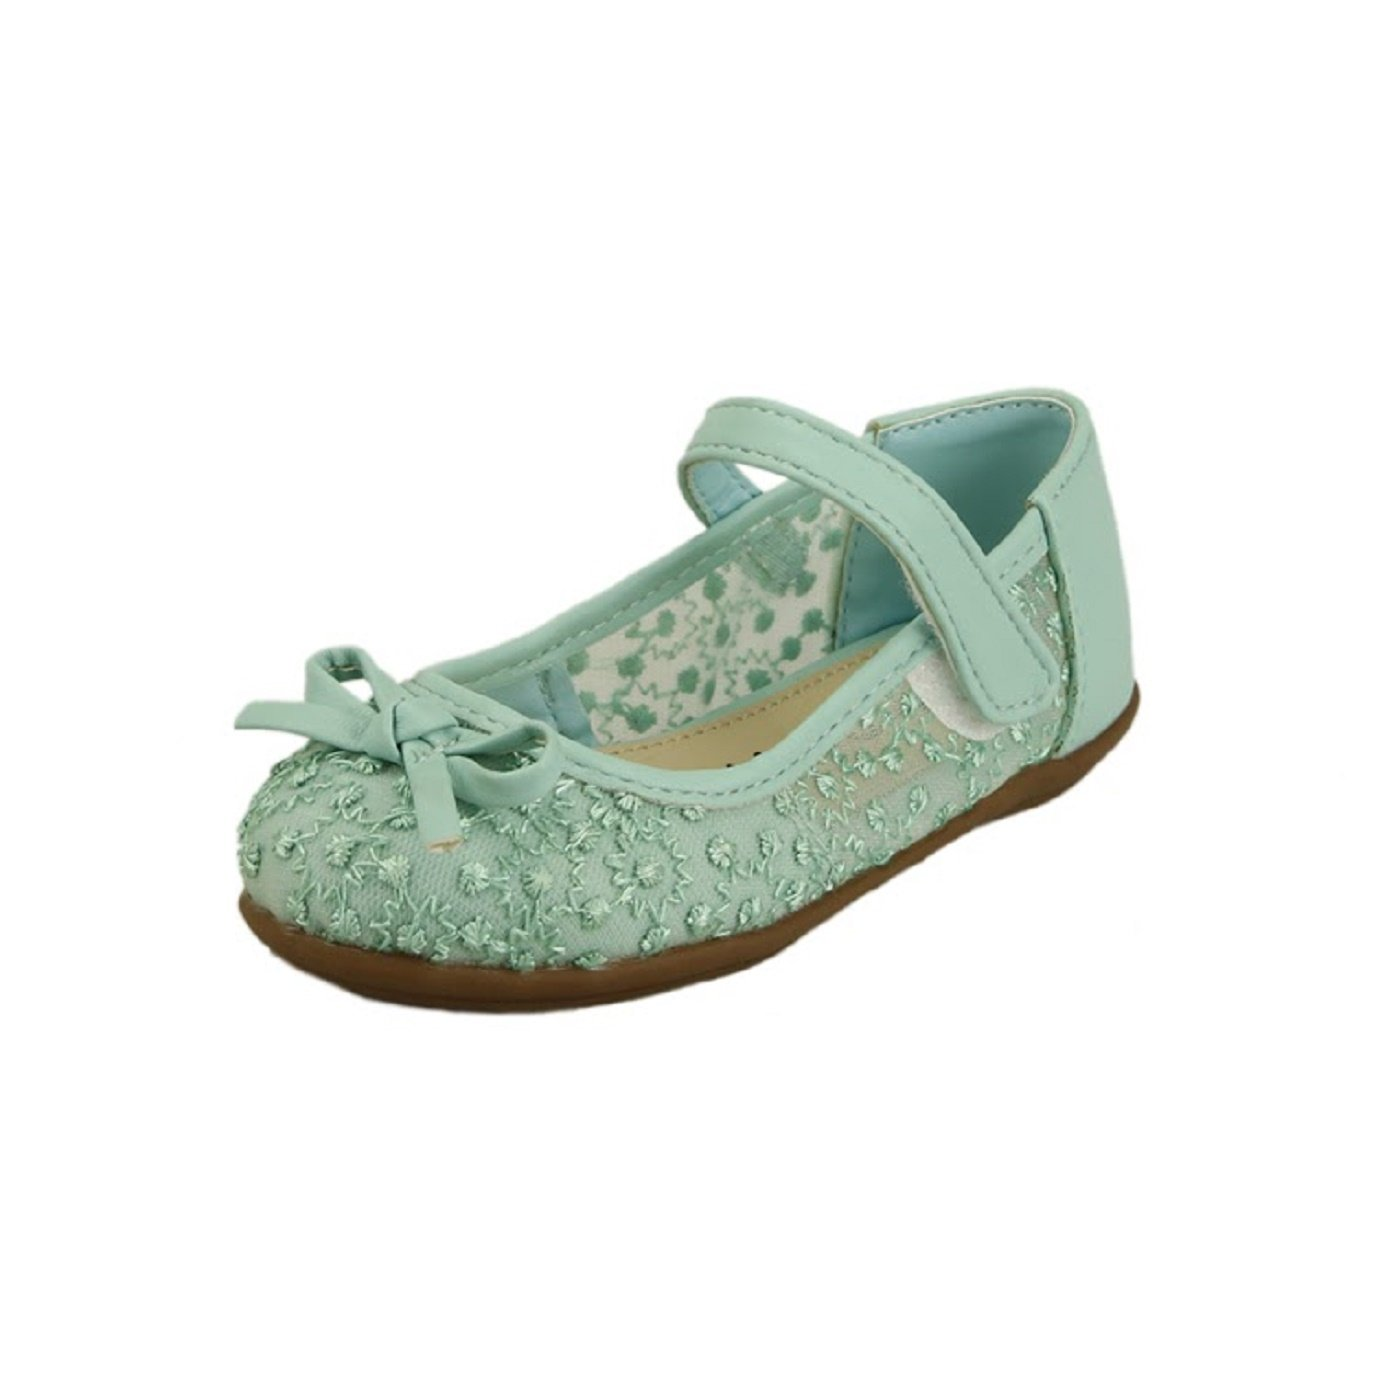 Wedding Flower Girl's Shoes Embroidery Organza Strap with Bow Toddler Size (13, Mint)